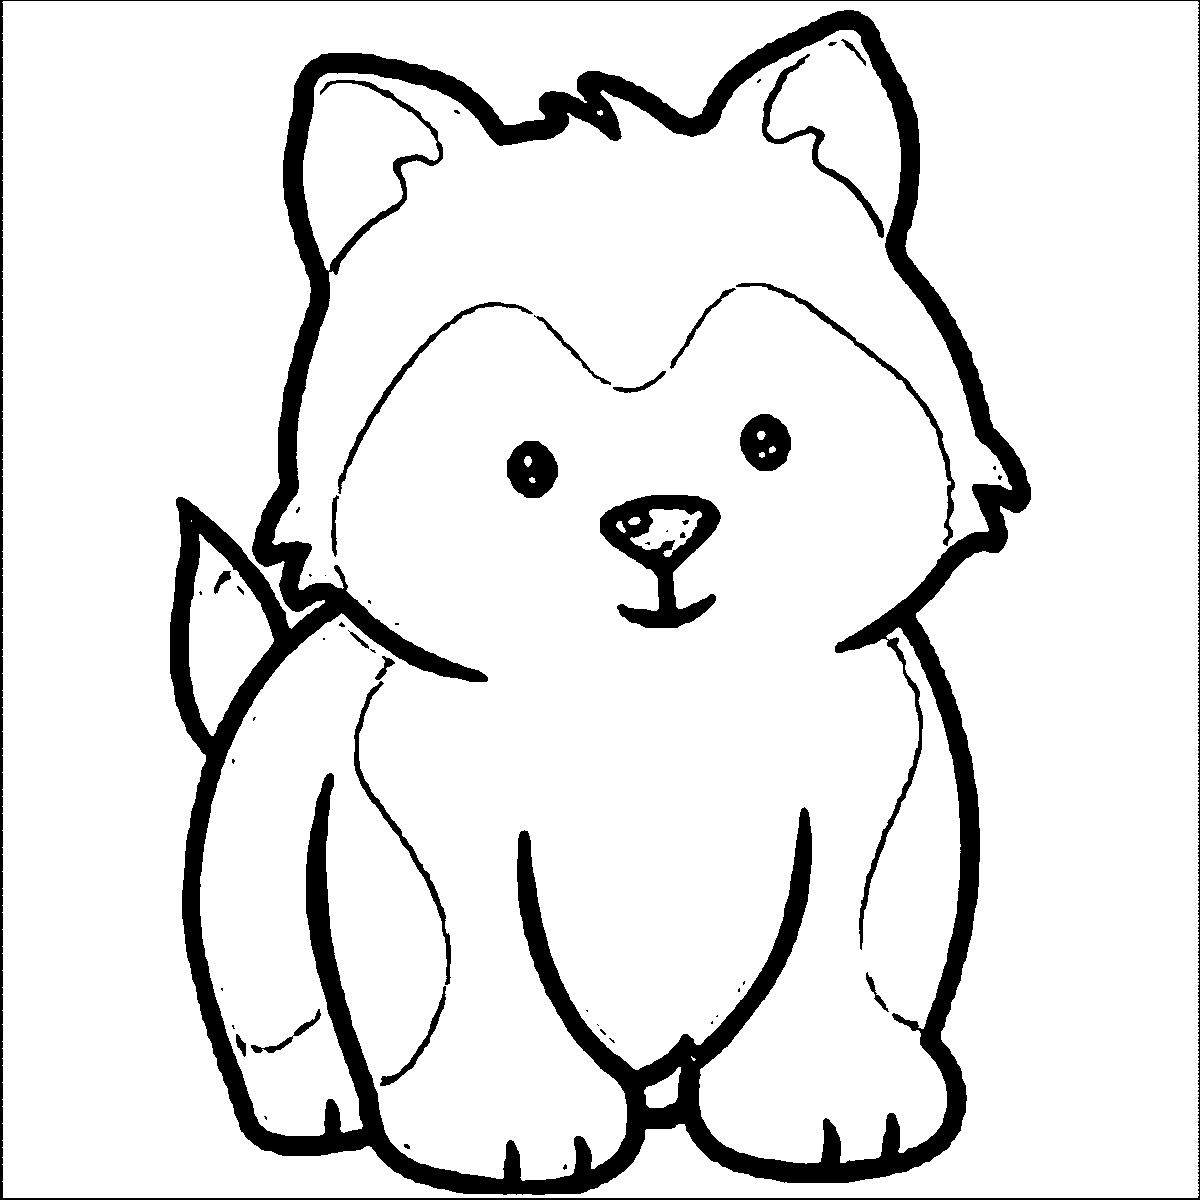 coloring pics of dogs puppy dog pals coloring pages to download and print for free dogs pics of coloring